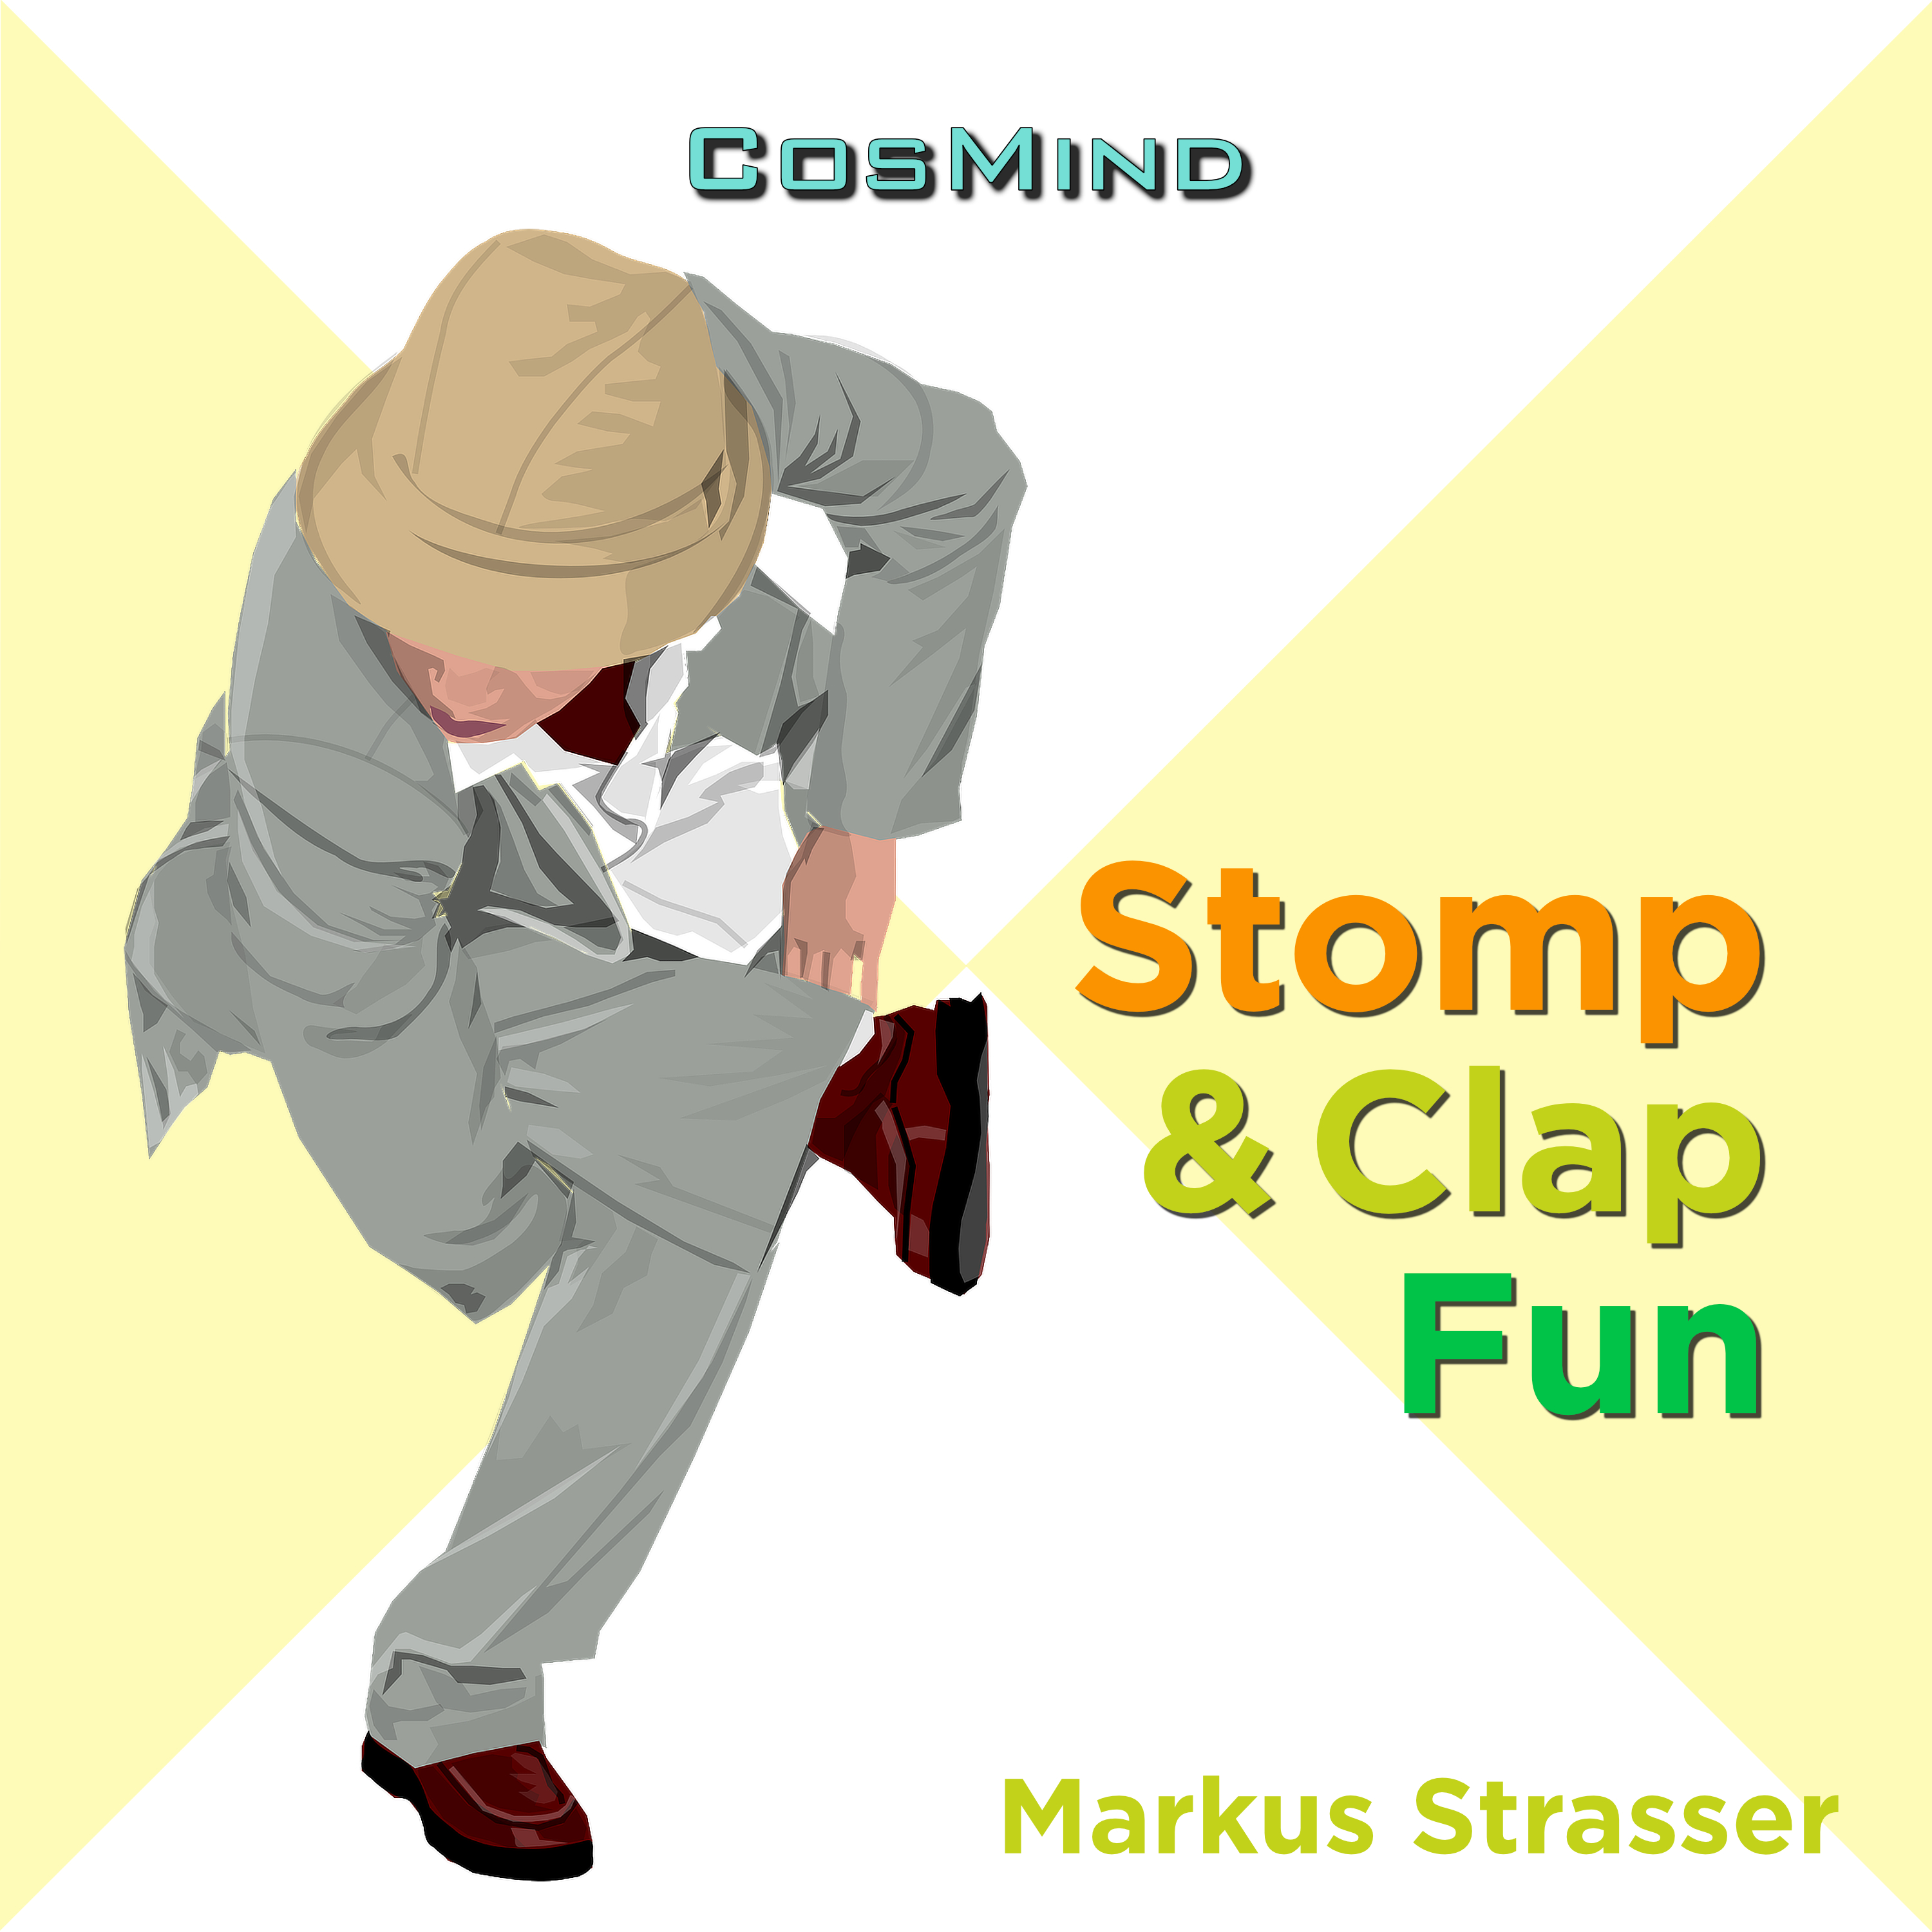 Stomp & Clap Fun